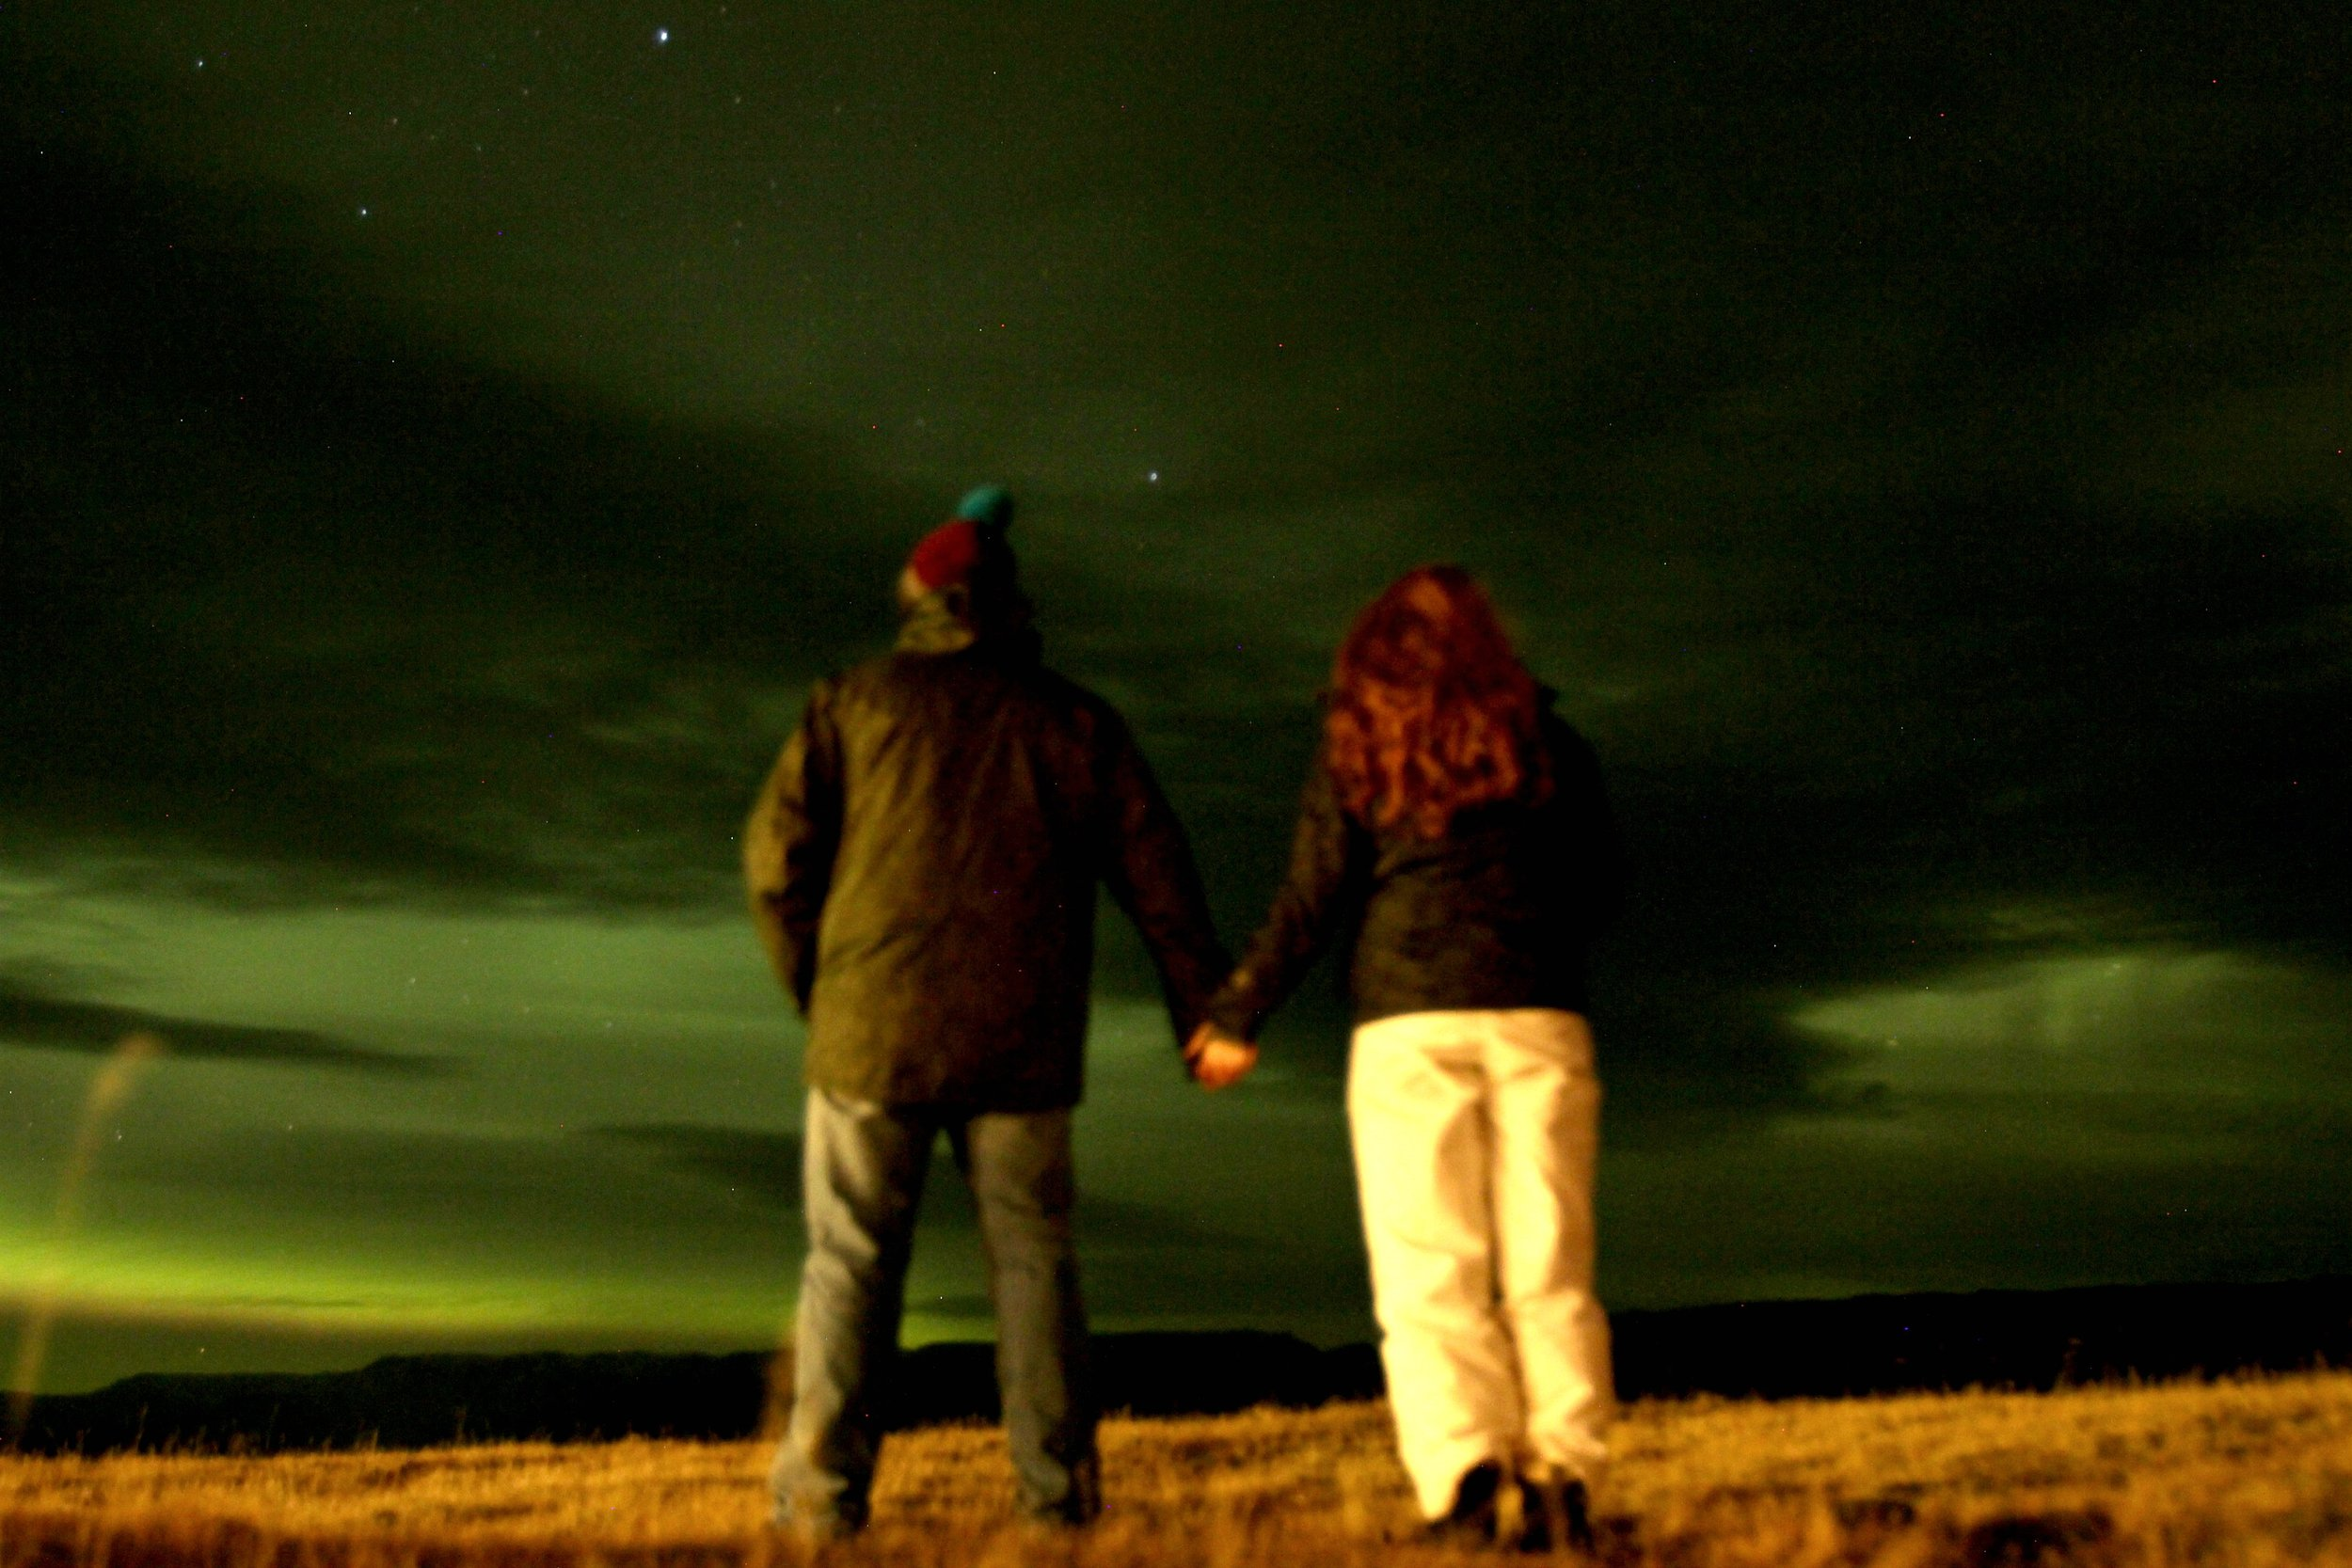 Northern Lights in Iceland - they looked grey to our naked eye, but turned out green with the camera...crazy!